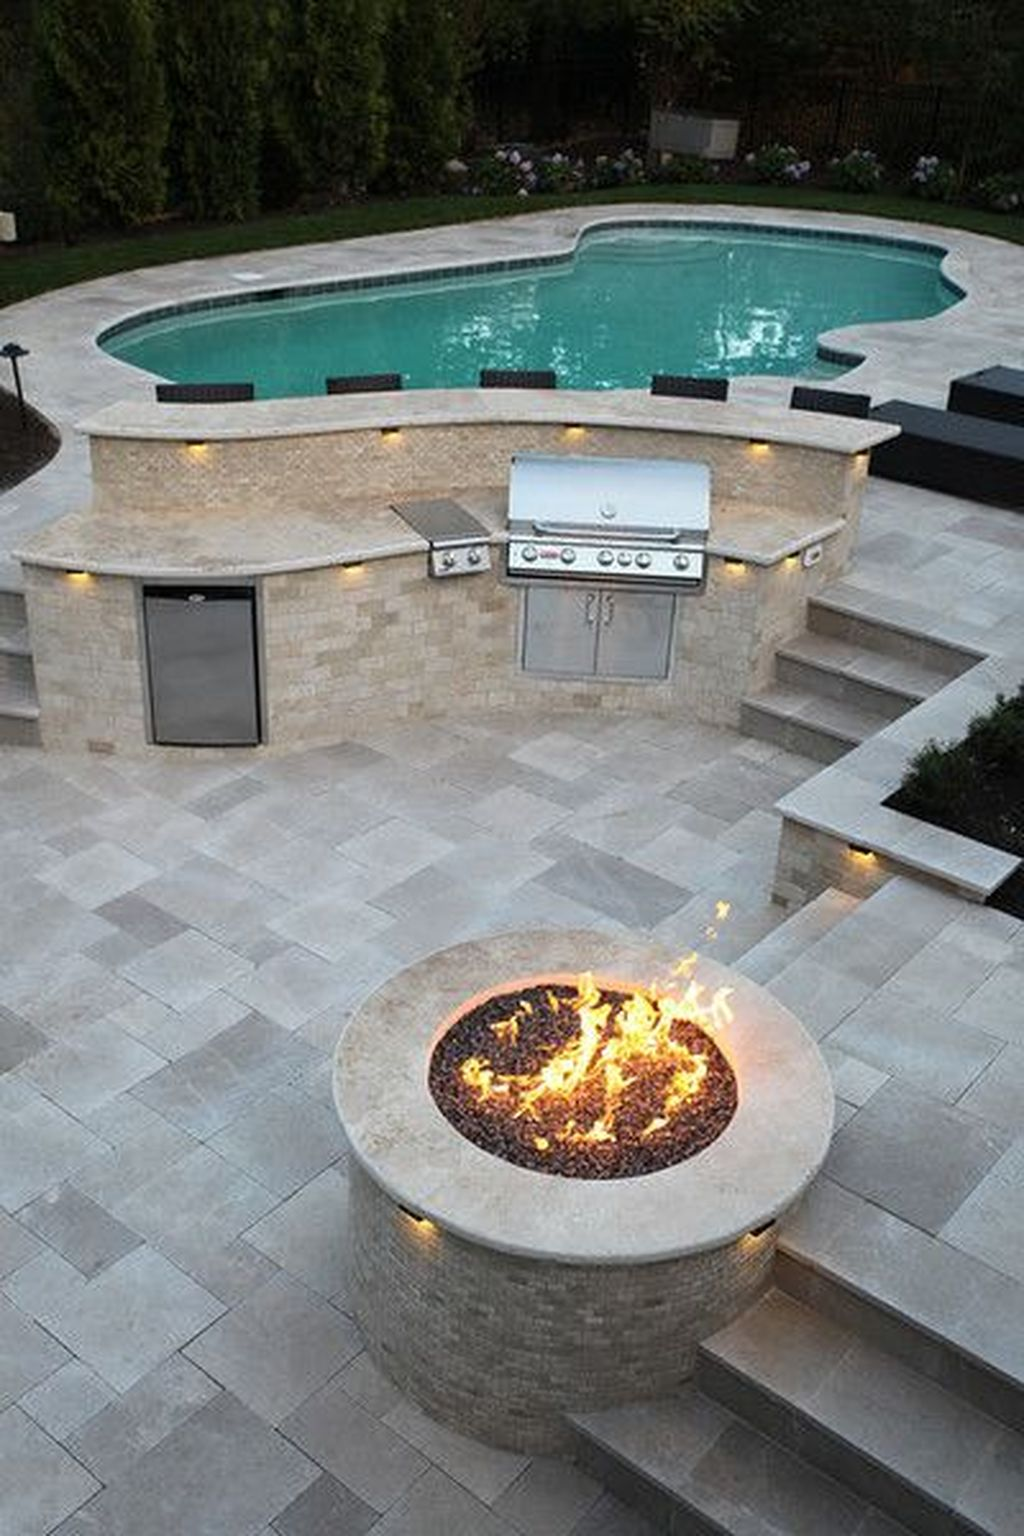 Fabulous Backyard Pool Landscaping Ideas You Never Seen Before 11